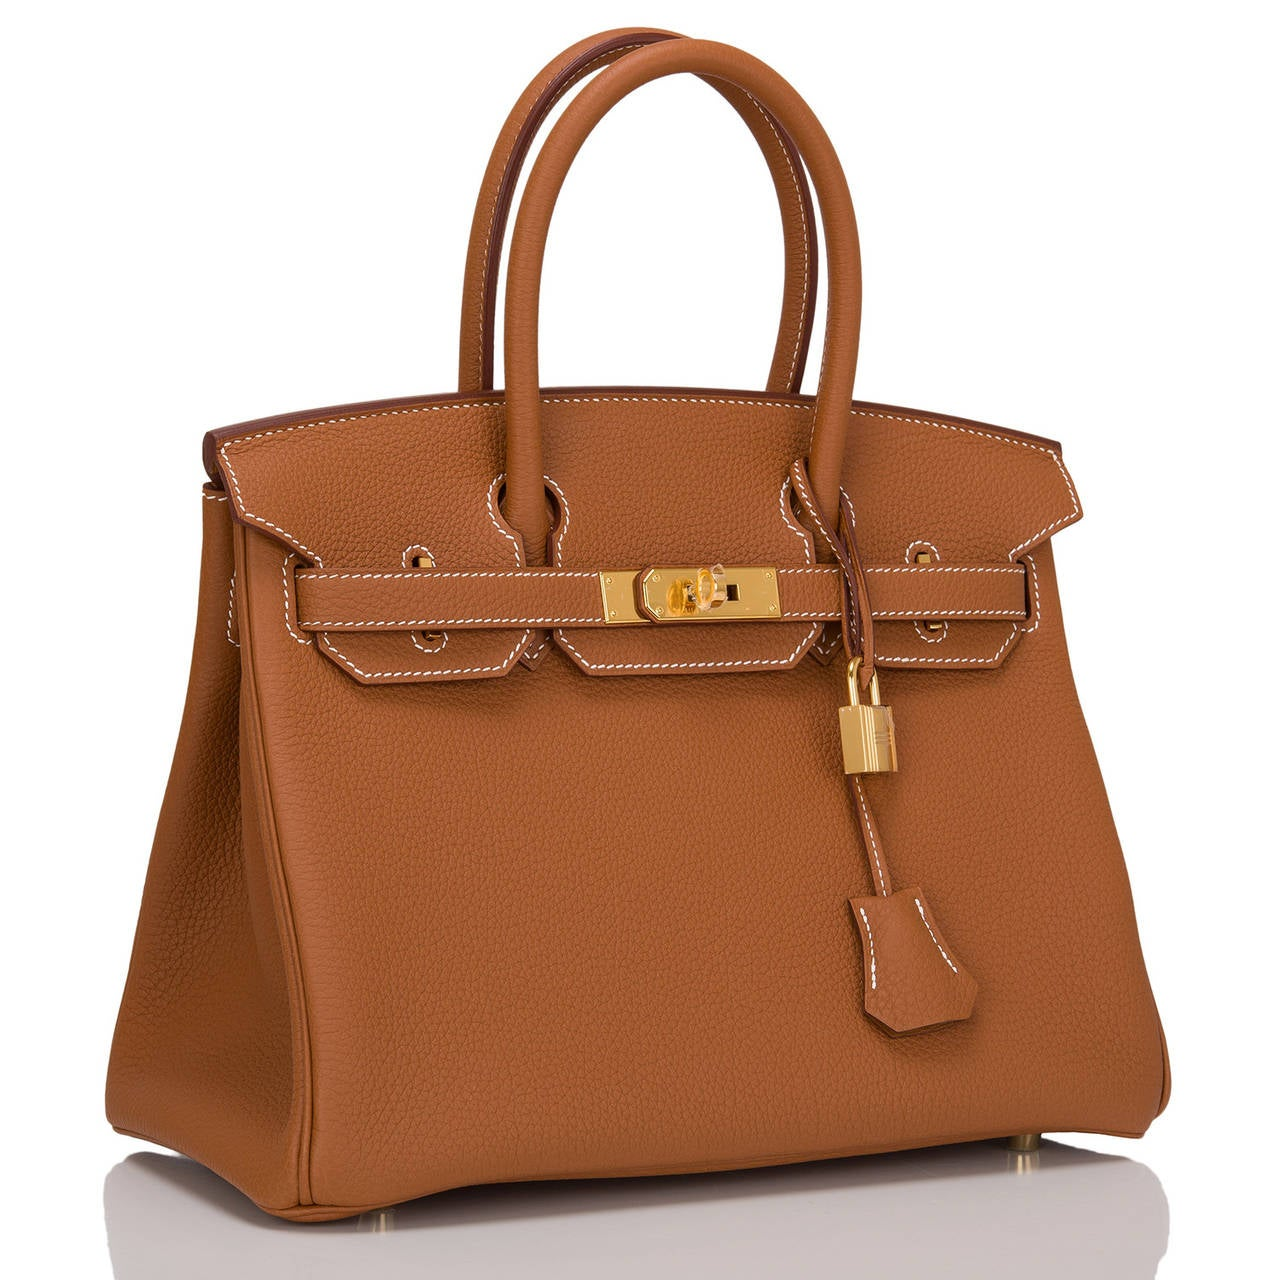 Hermes Gold Birkin 30cm in togo (bull) leather with gold hardware.